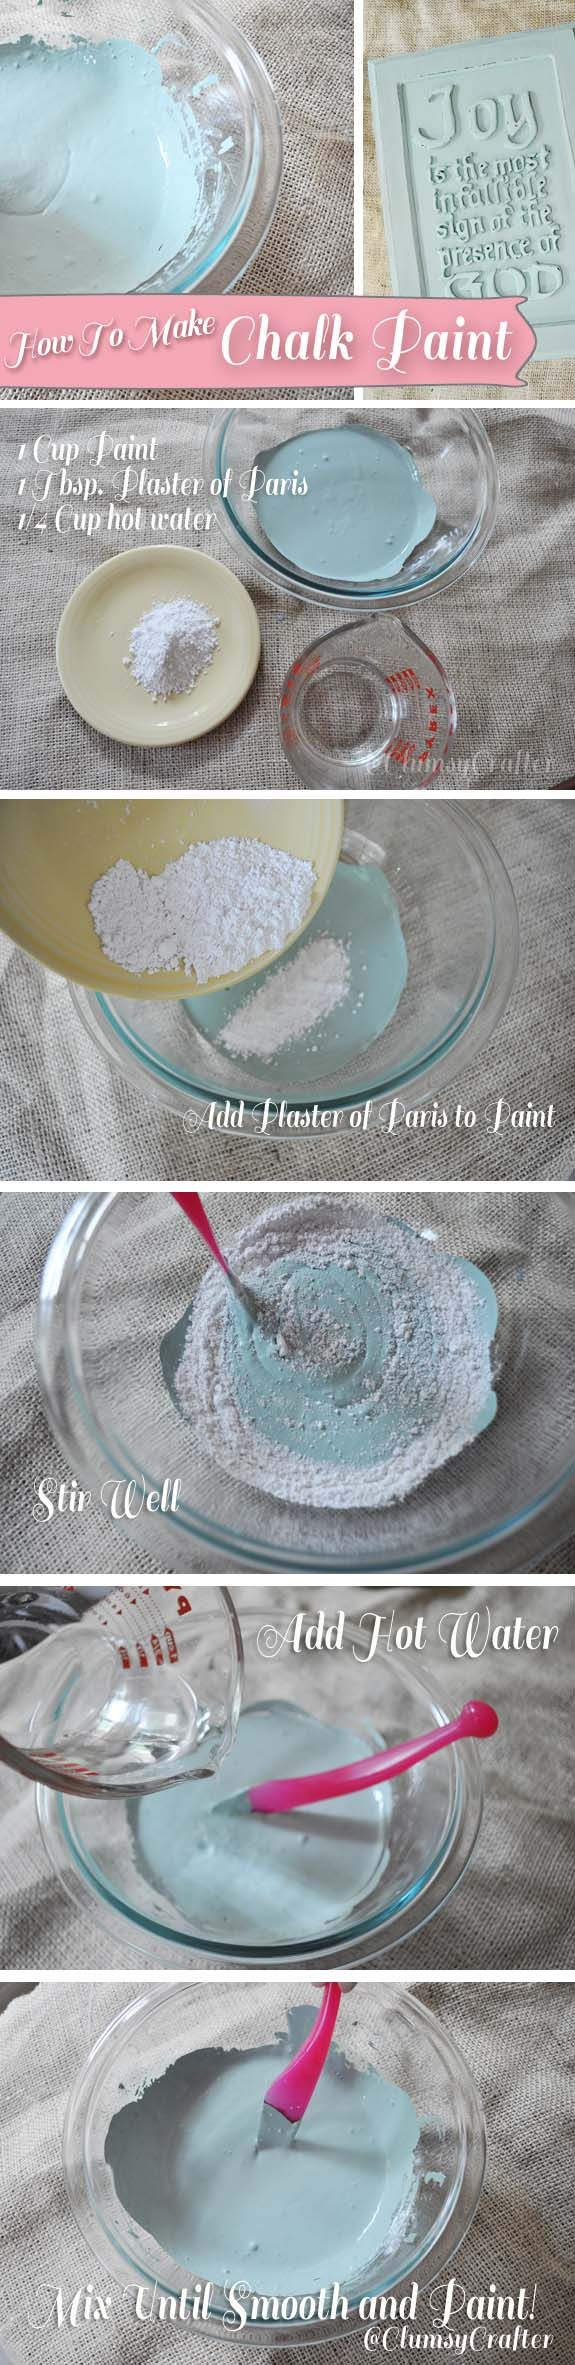 How to Make Chalk Paint :: not the chalkboard type of paint, it's like the Annie Sloan chalk type of paint! cool...tutorial.